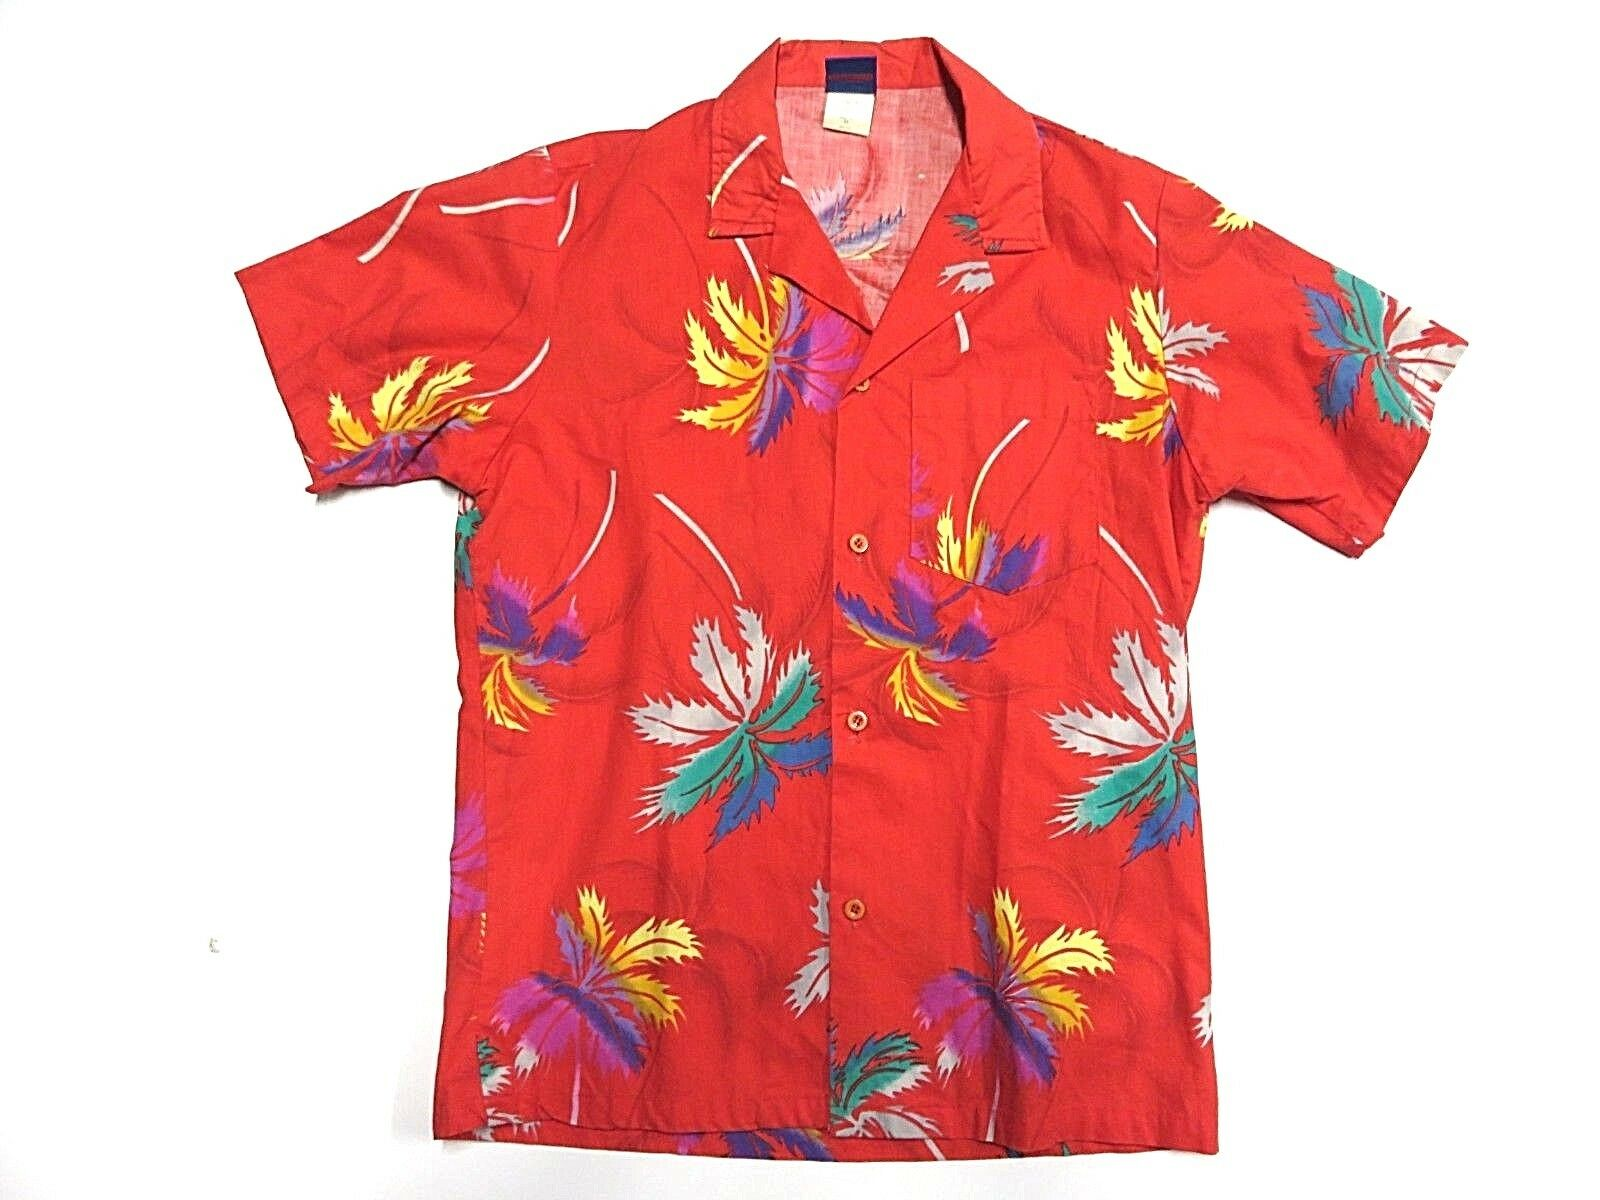 80s OCEAN PACIFIC Hawaiian Floral Tropical Button Up Shirt Adult Mens Size Small